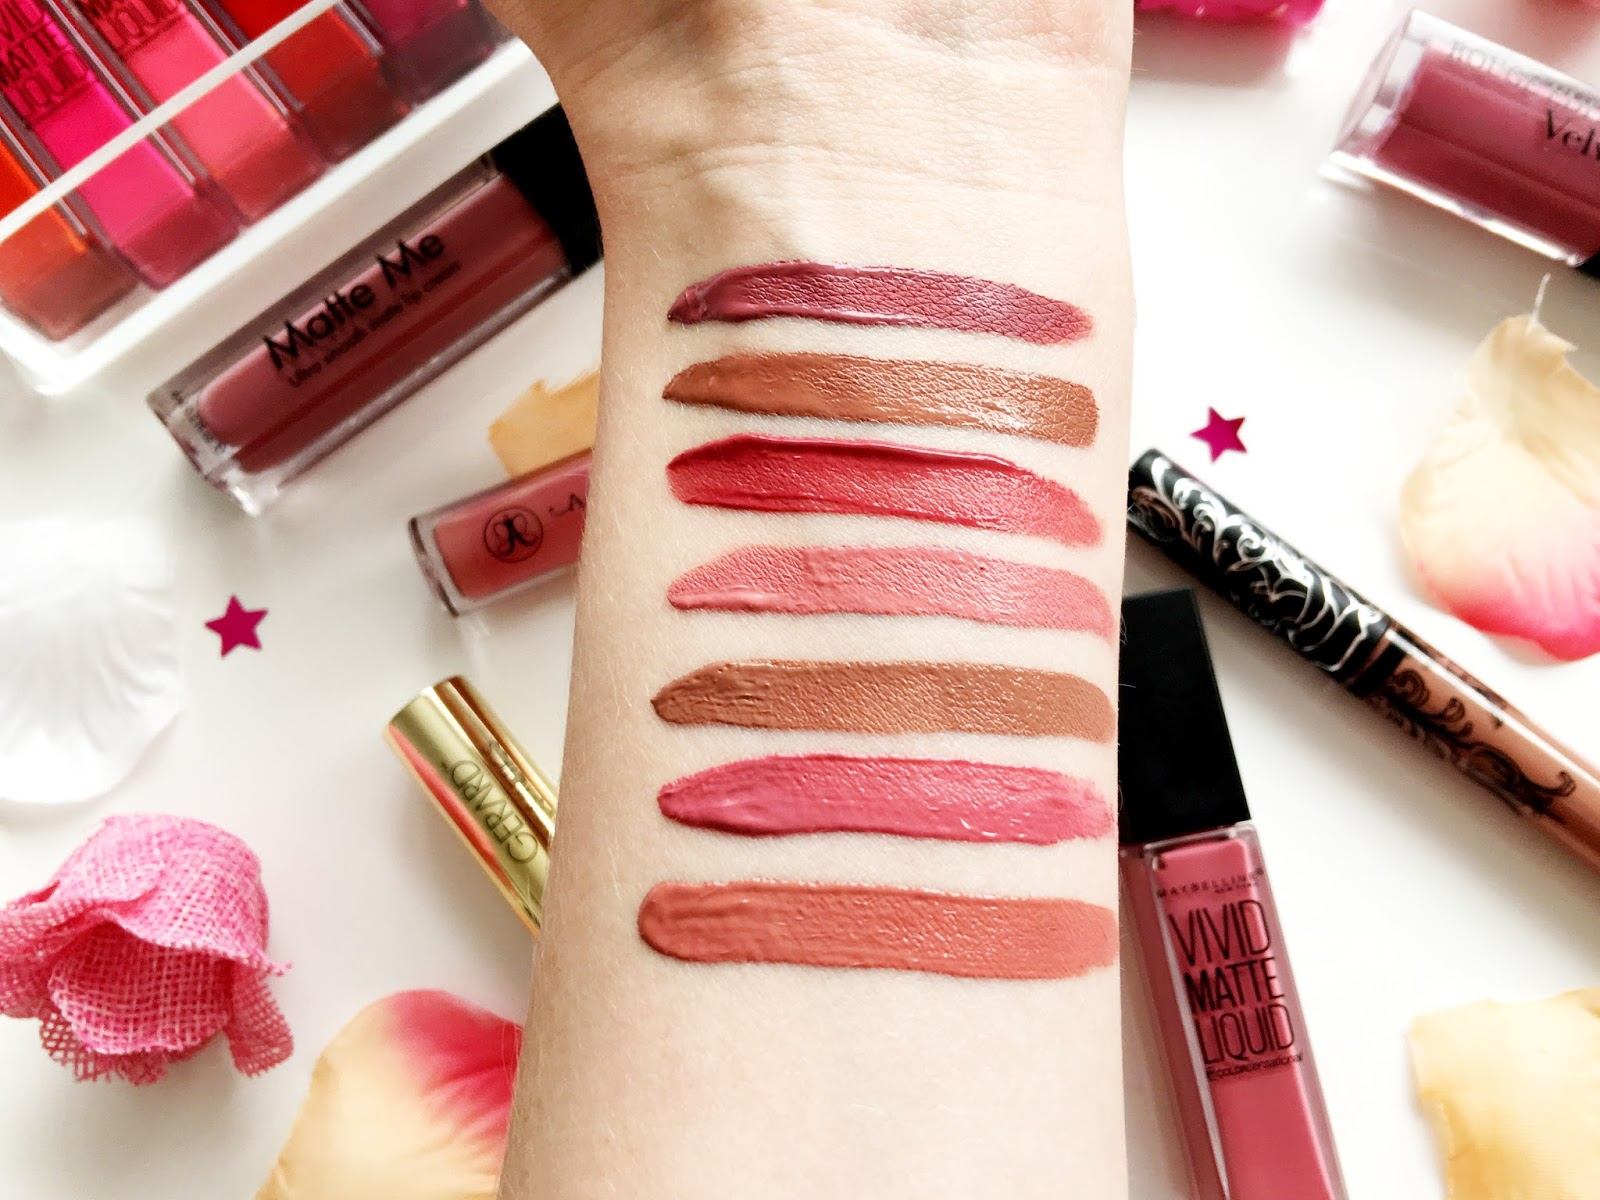 Favourite Liquid Lipstick Swatches